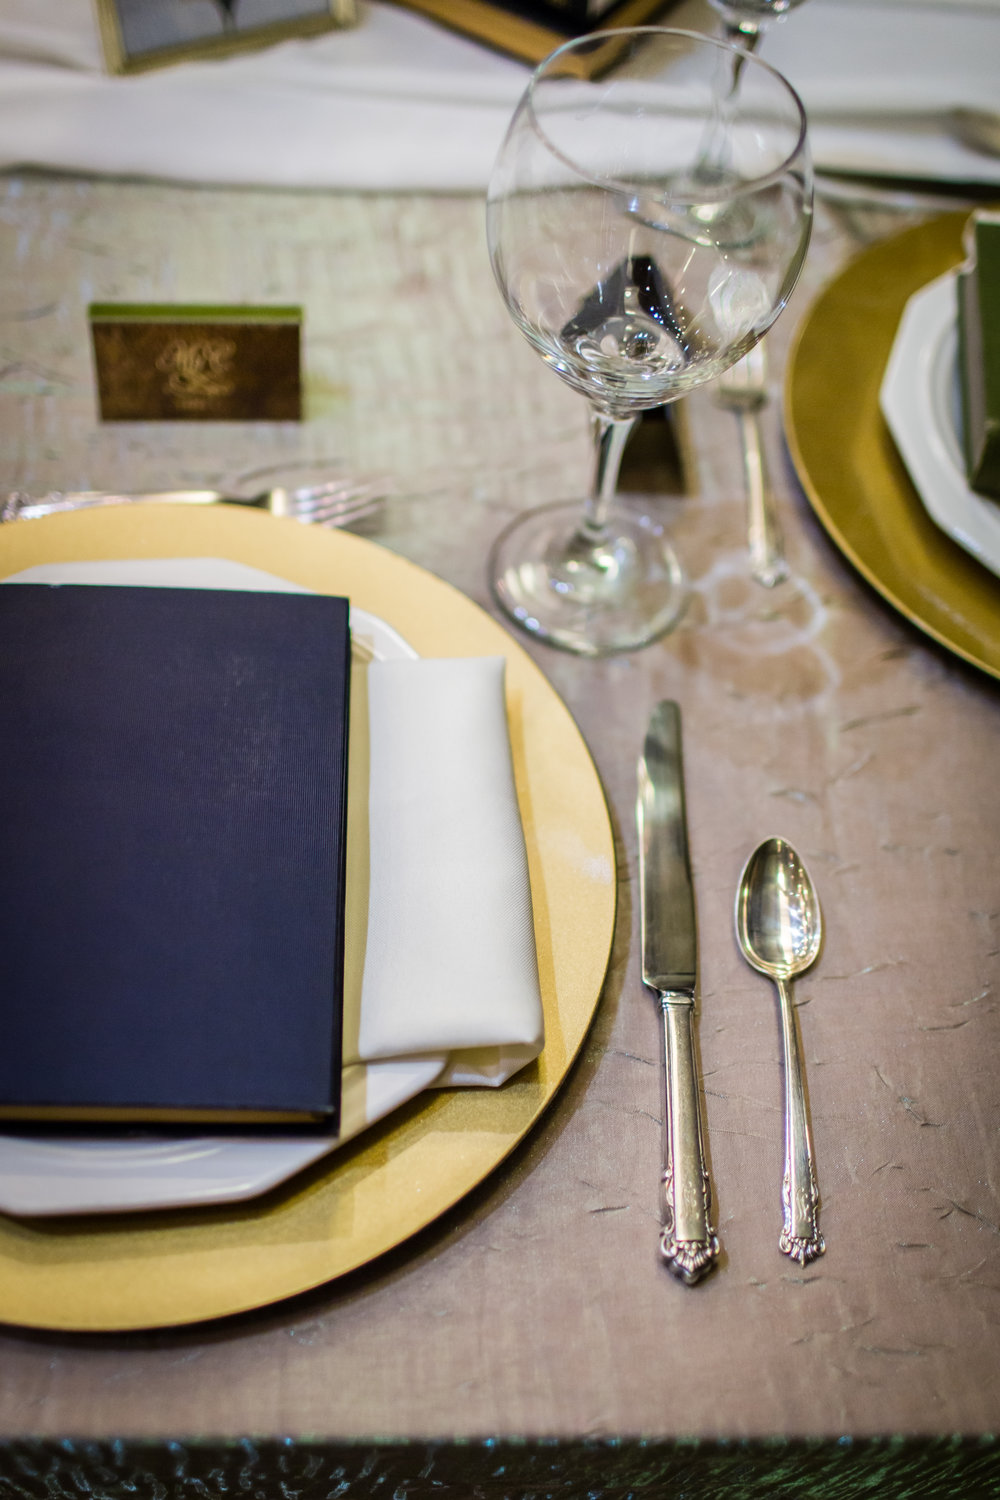 Decor for a literary themed wedding including books, gold chargers, ivory napkins, and a textured linen